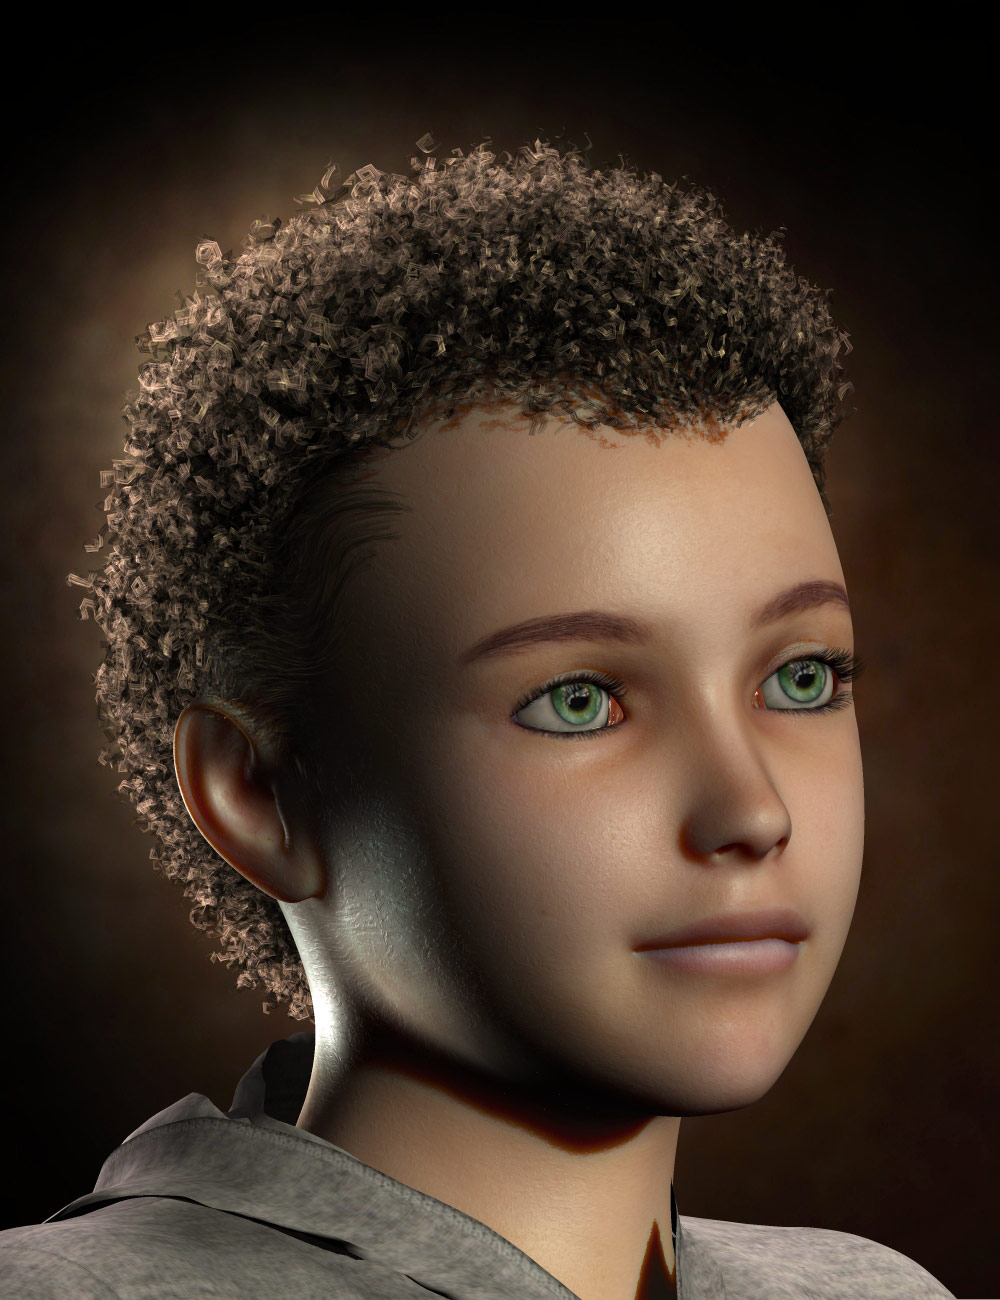 Paul Hair for Genesis and M4 by: Neftis3D, 3D Models by Daz 3D